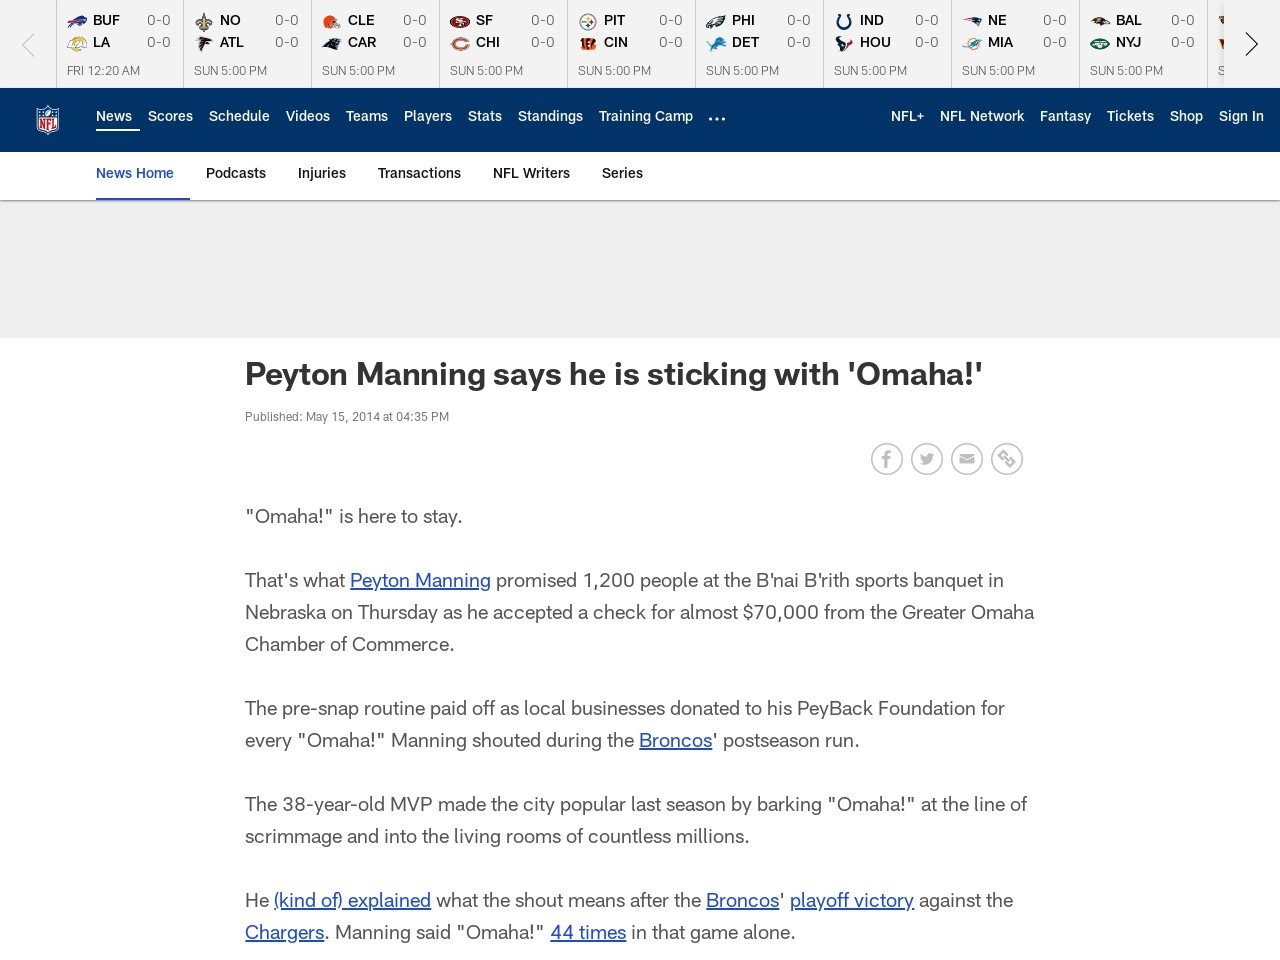 Peyton Manning says he is sticking with 'Omaha!'